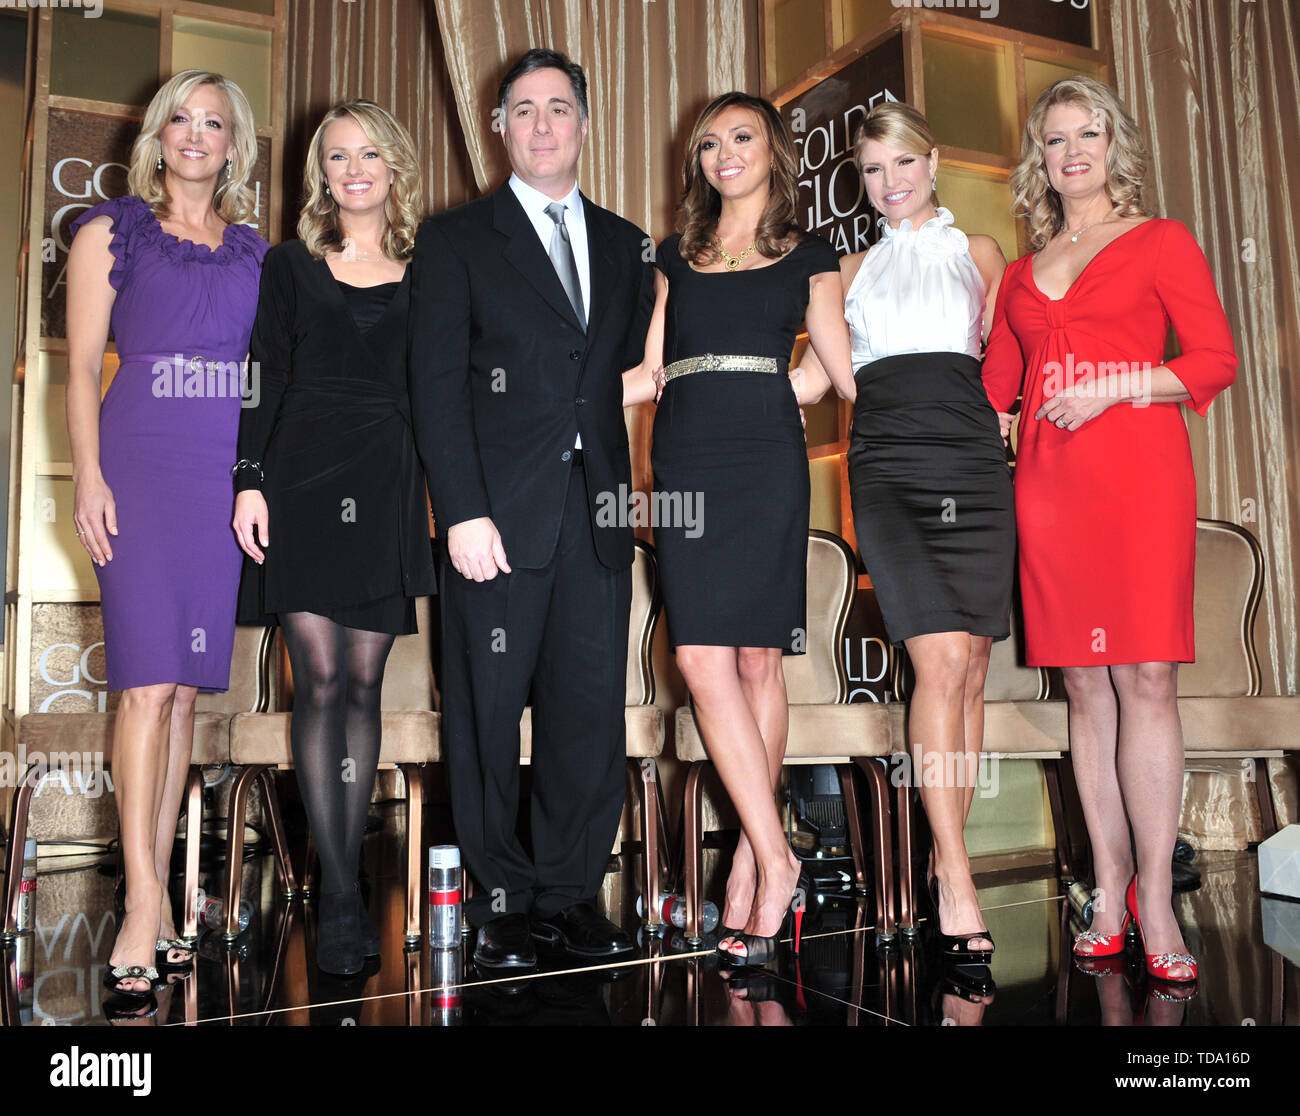 LOS ANGELES, CA. January 13, 2008: LtoR: TV presenters Lara Spencer, Brooke Anderson,  Jim Moret, Giuliana Rancic, Dayna Devon & Mary Hart at the Beverly Hilton Hotel for the announcement of the winners of the Golden Globe Awards. © 2008 Paul Smith / Featureflash - Stock Image